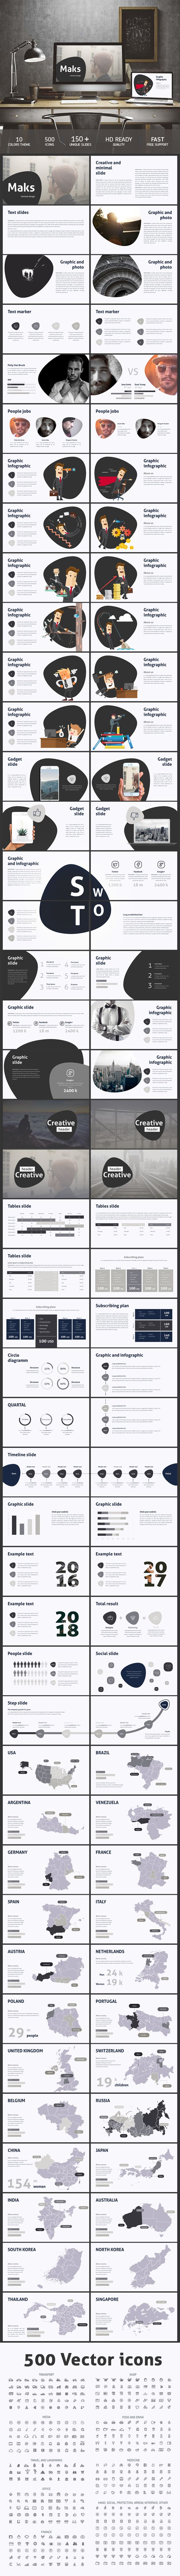 413 best PPT templates images on Pinterest | Editorial design ...